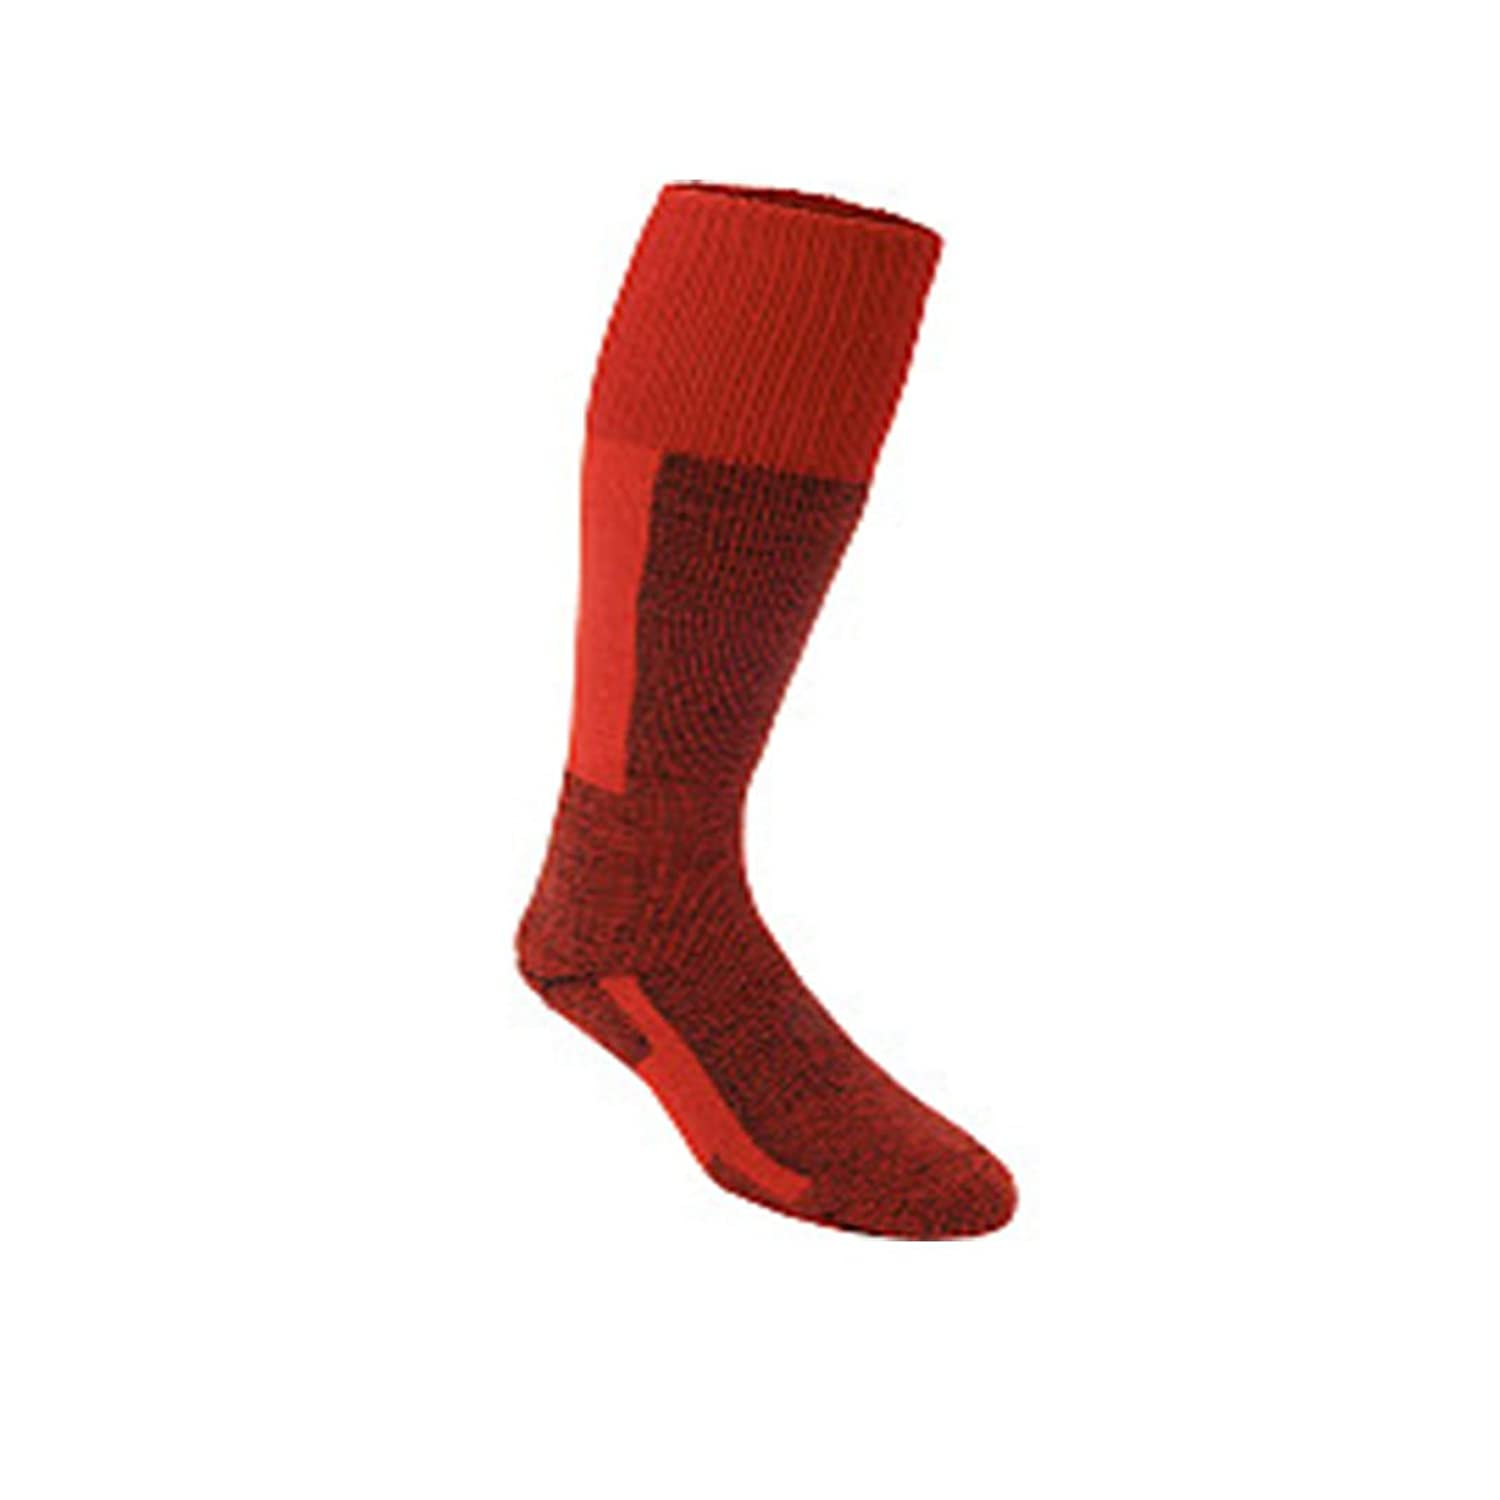 Thorlo Fully Padded Ski Socken - AW15